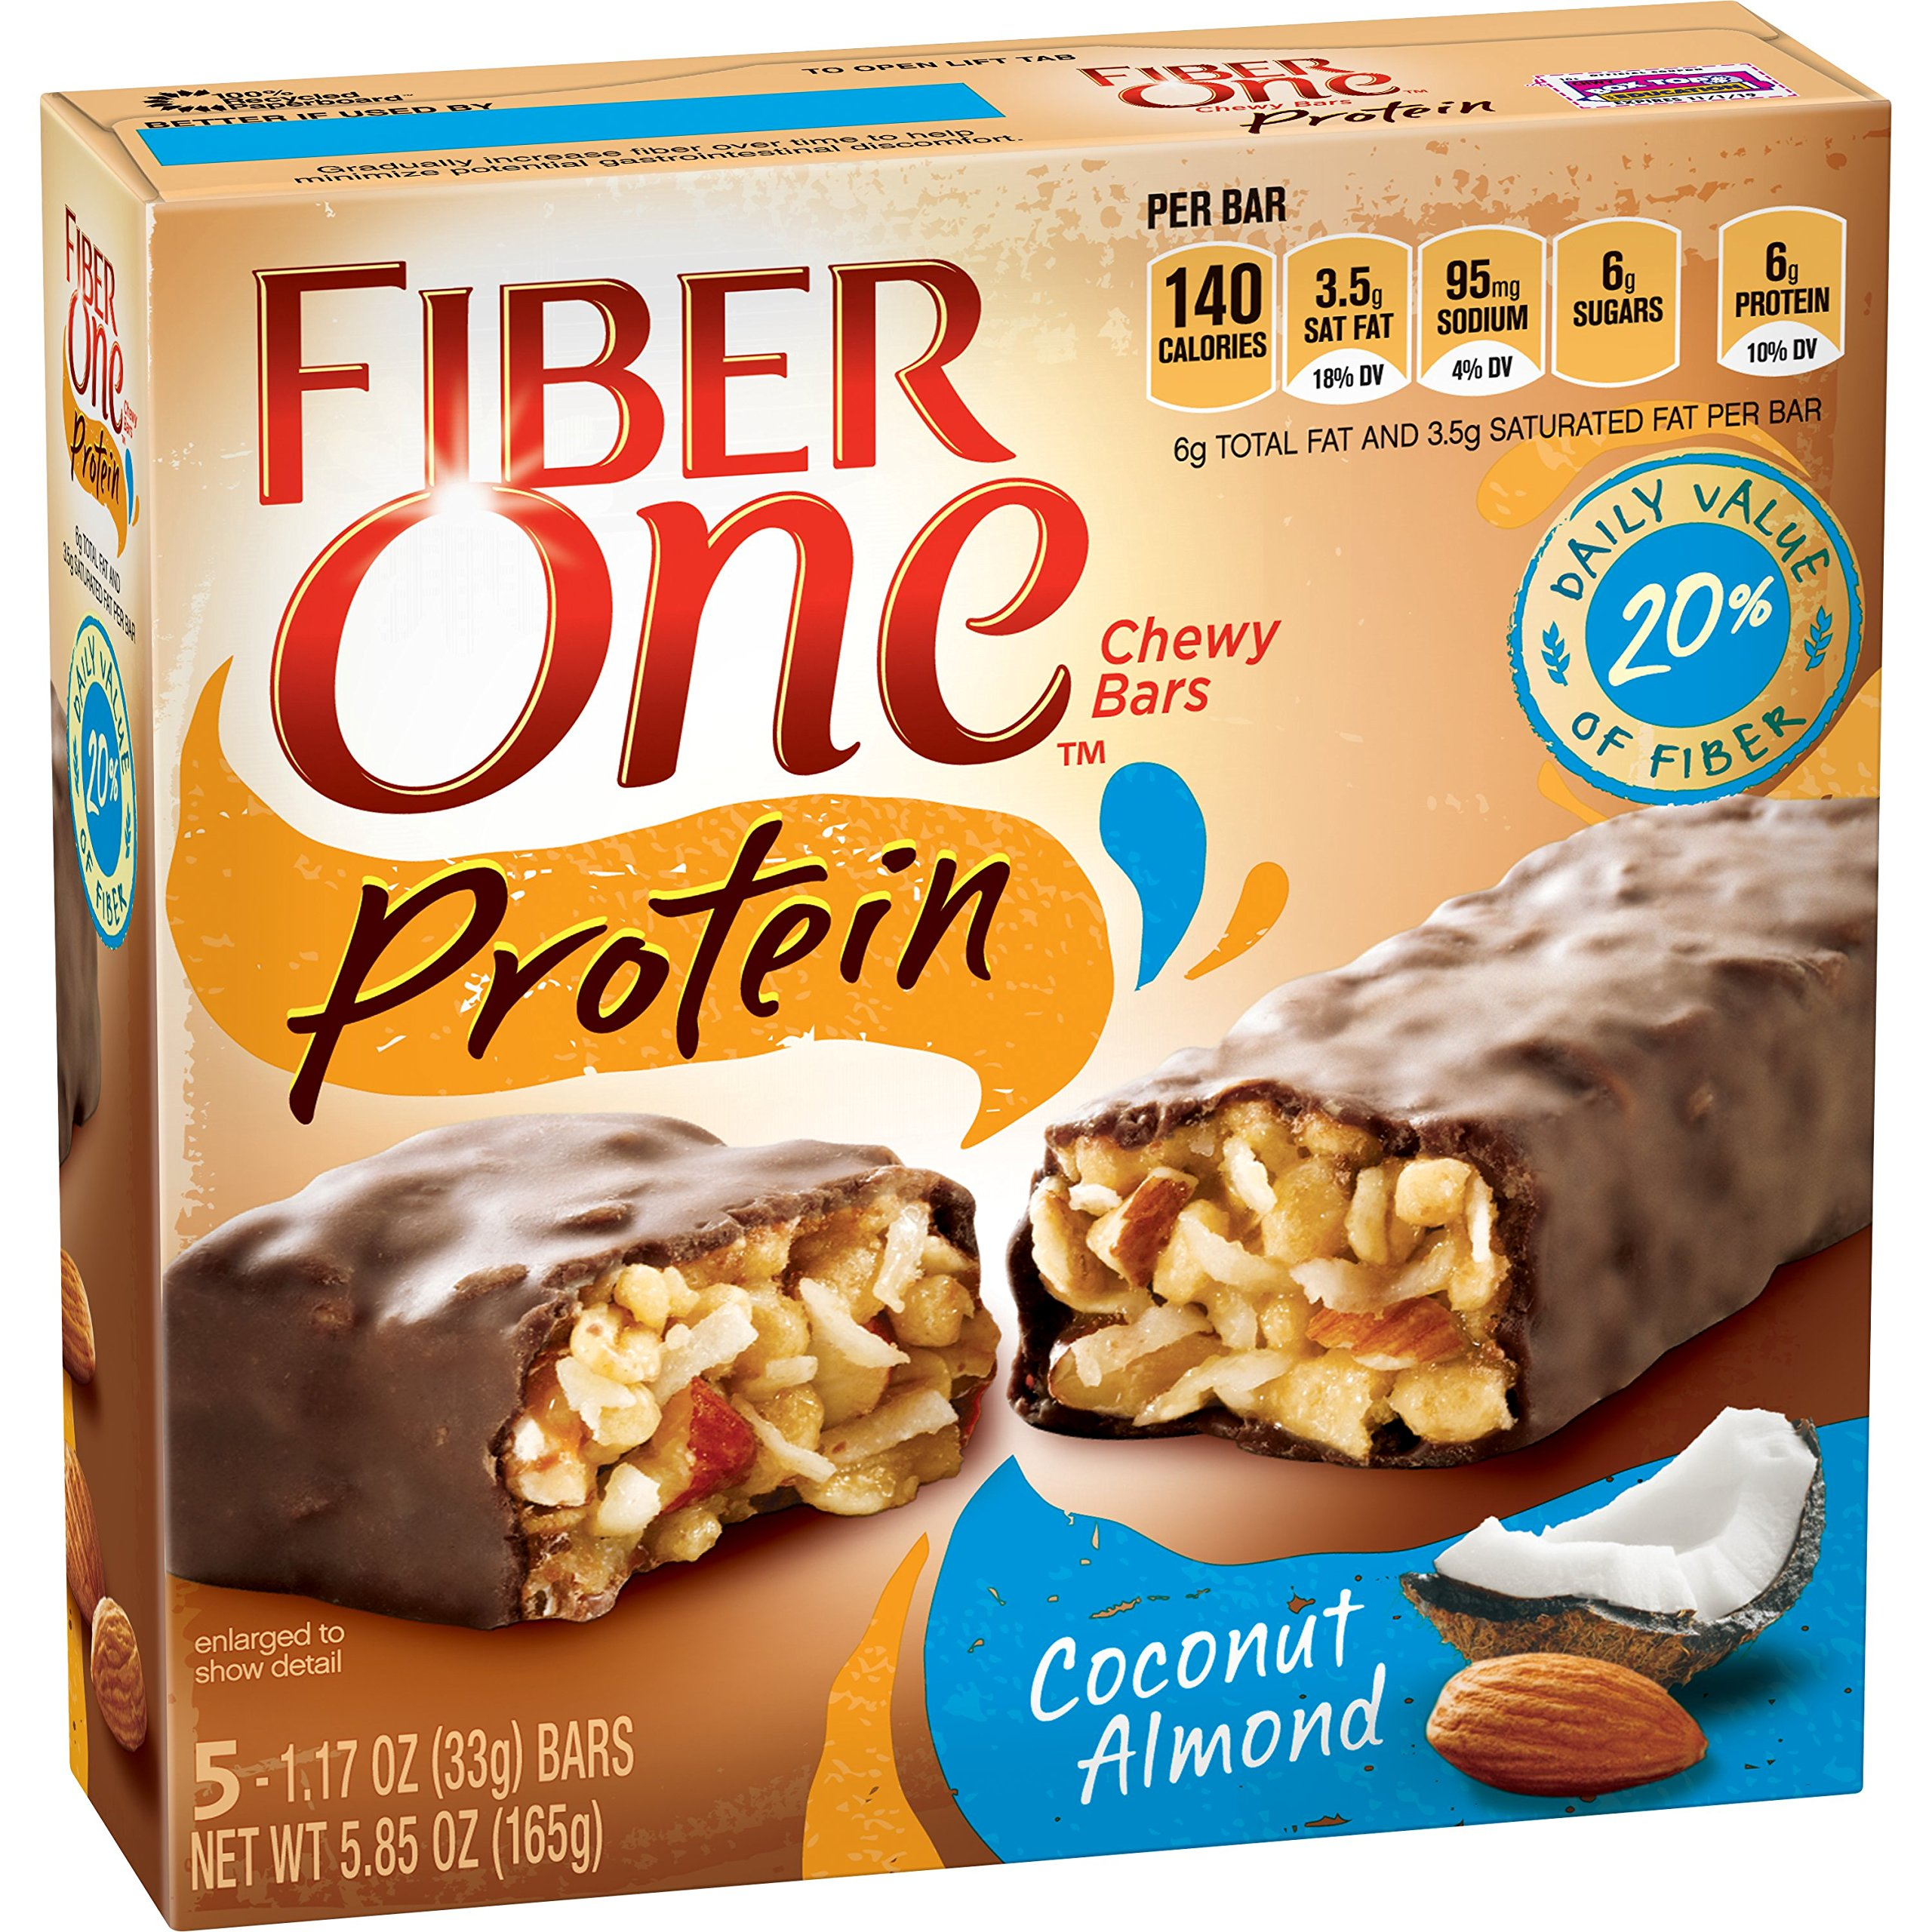 Fiber One Protein Bar, Coconut Almond Chewy Bars, 5 Fiber Bars, 5.85 oz (Pack of 6)